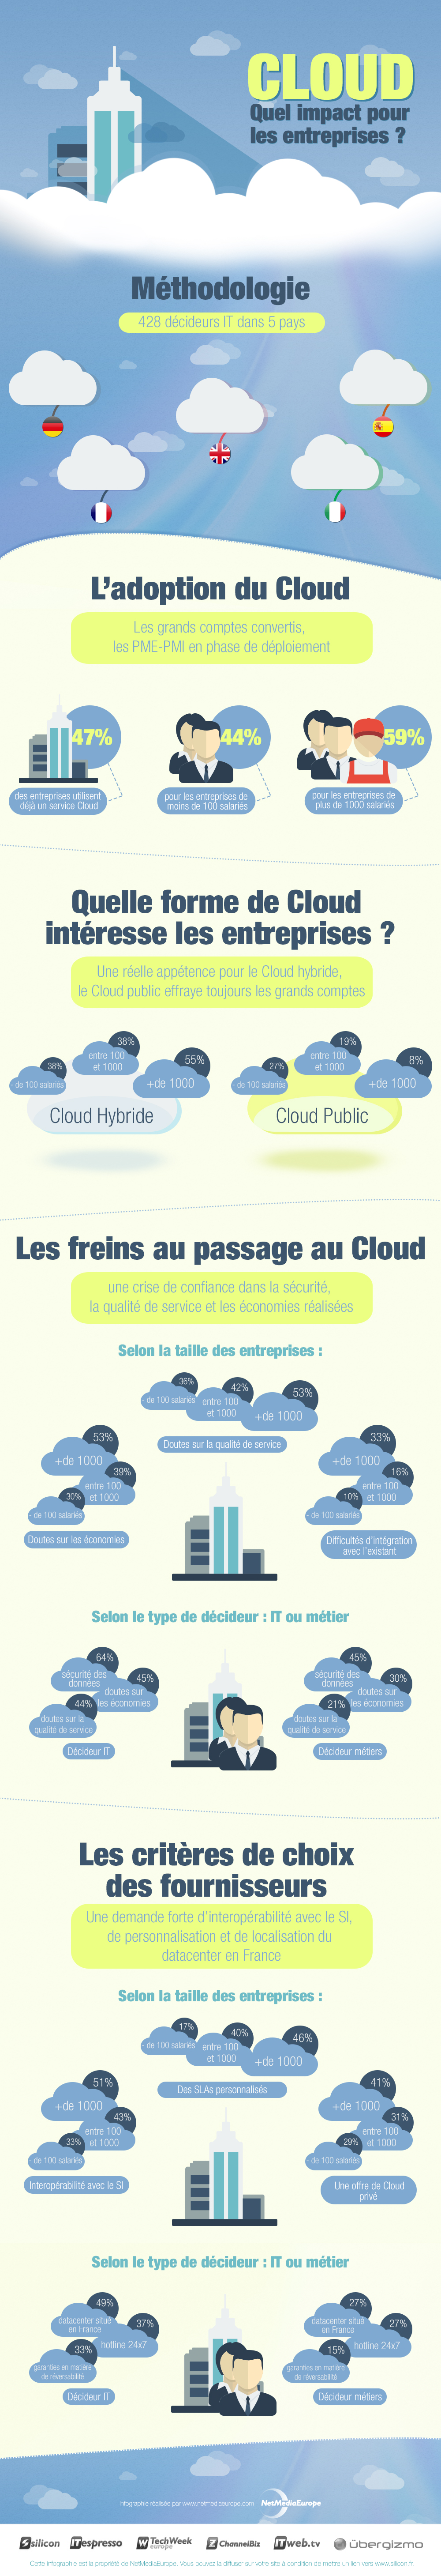 infographie impact Cloud